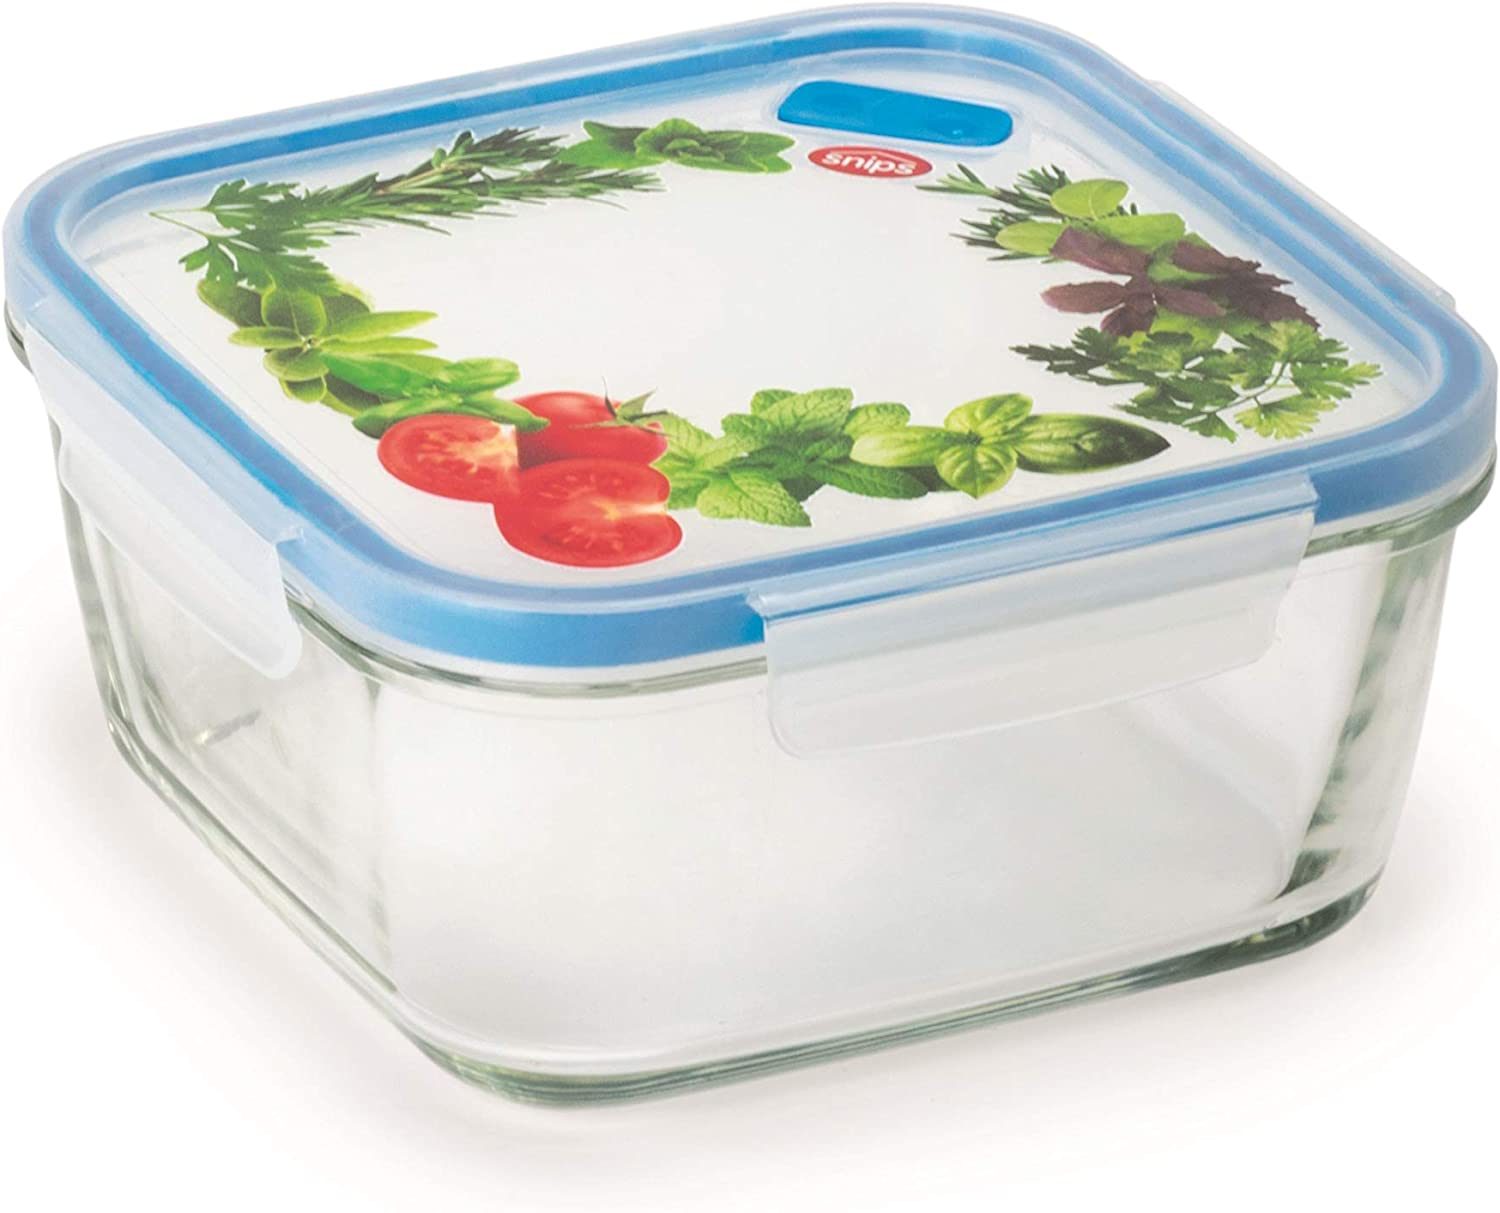 Snips Lock Glass Square Food Container 1.40L Transparent with Decoration